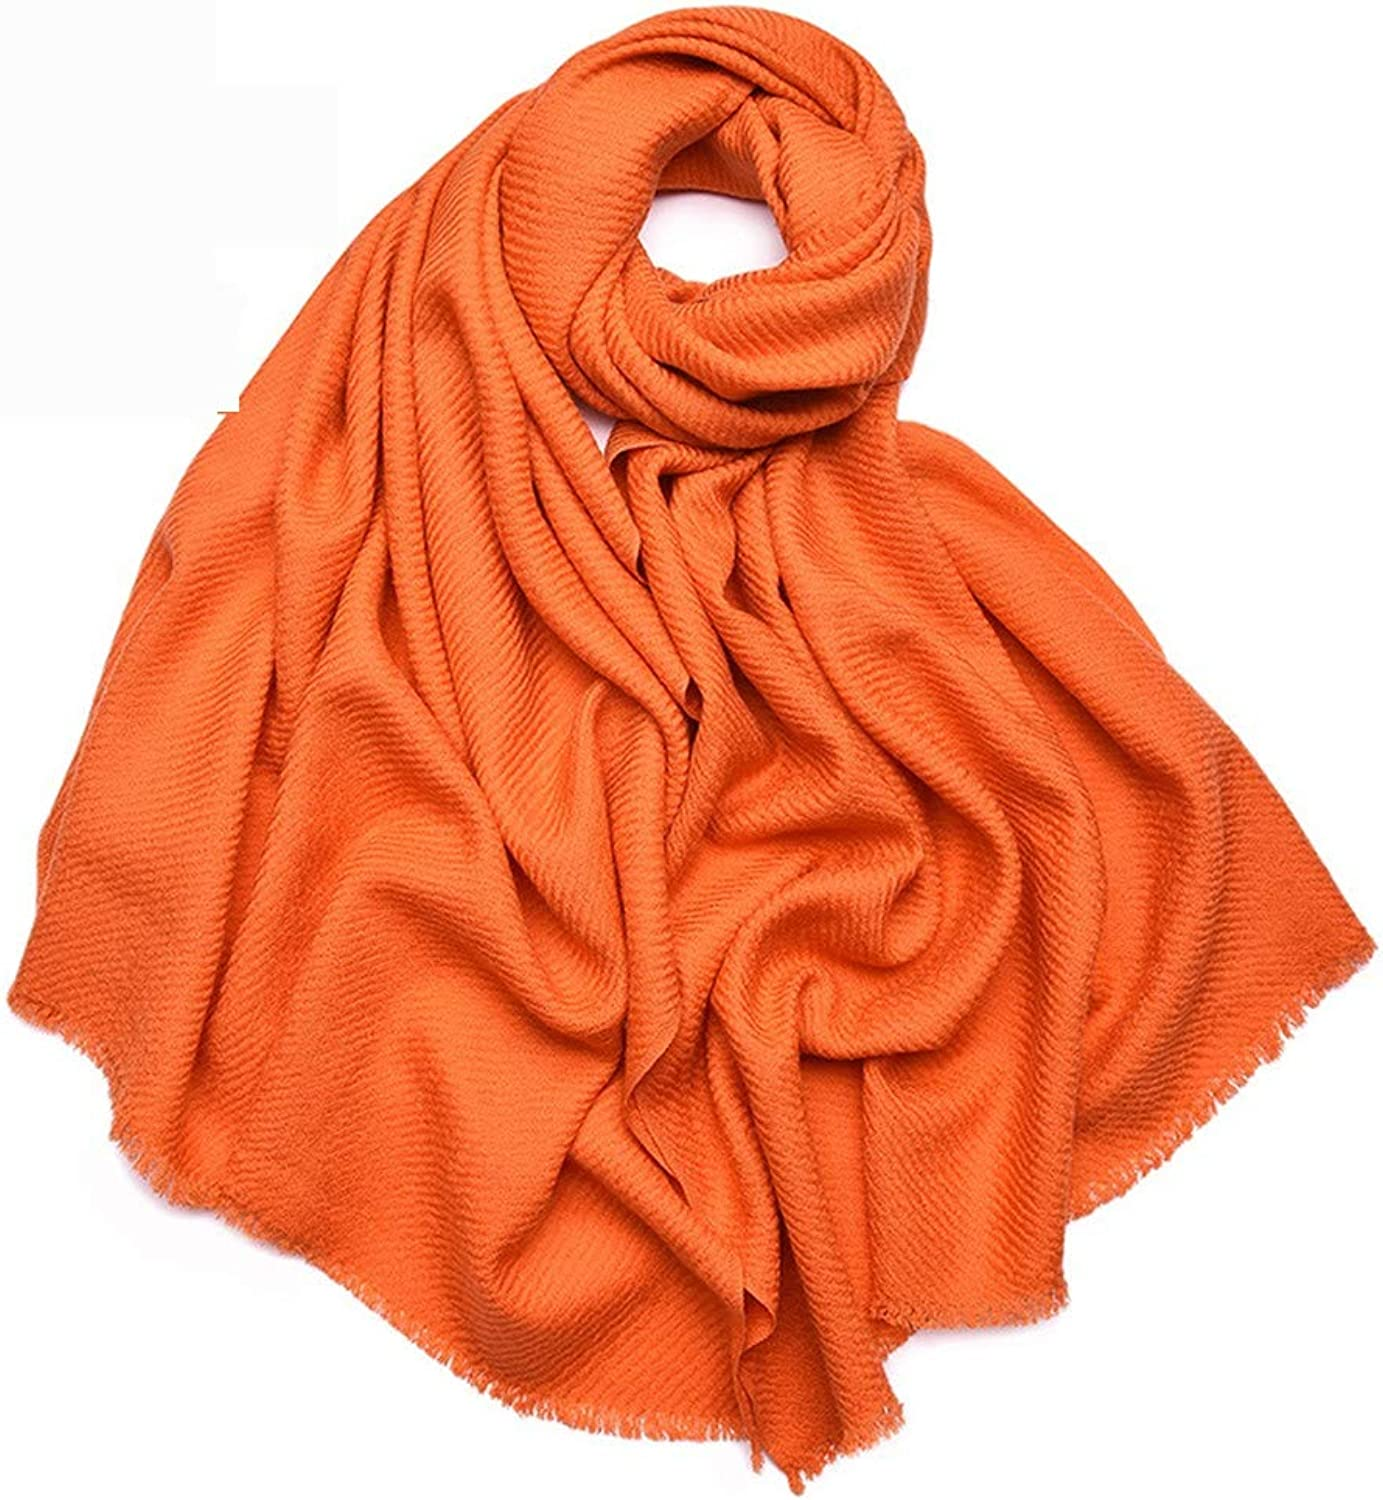 AFBLR shawl cloak Pure wool large twill shawl autumn and winter warm universal scarf, orange